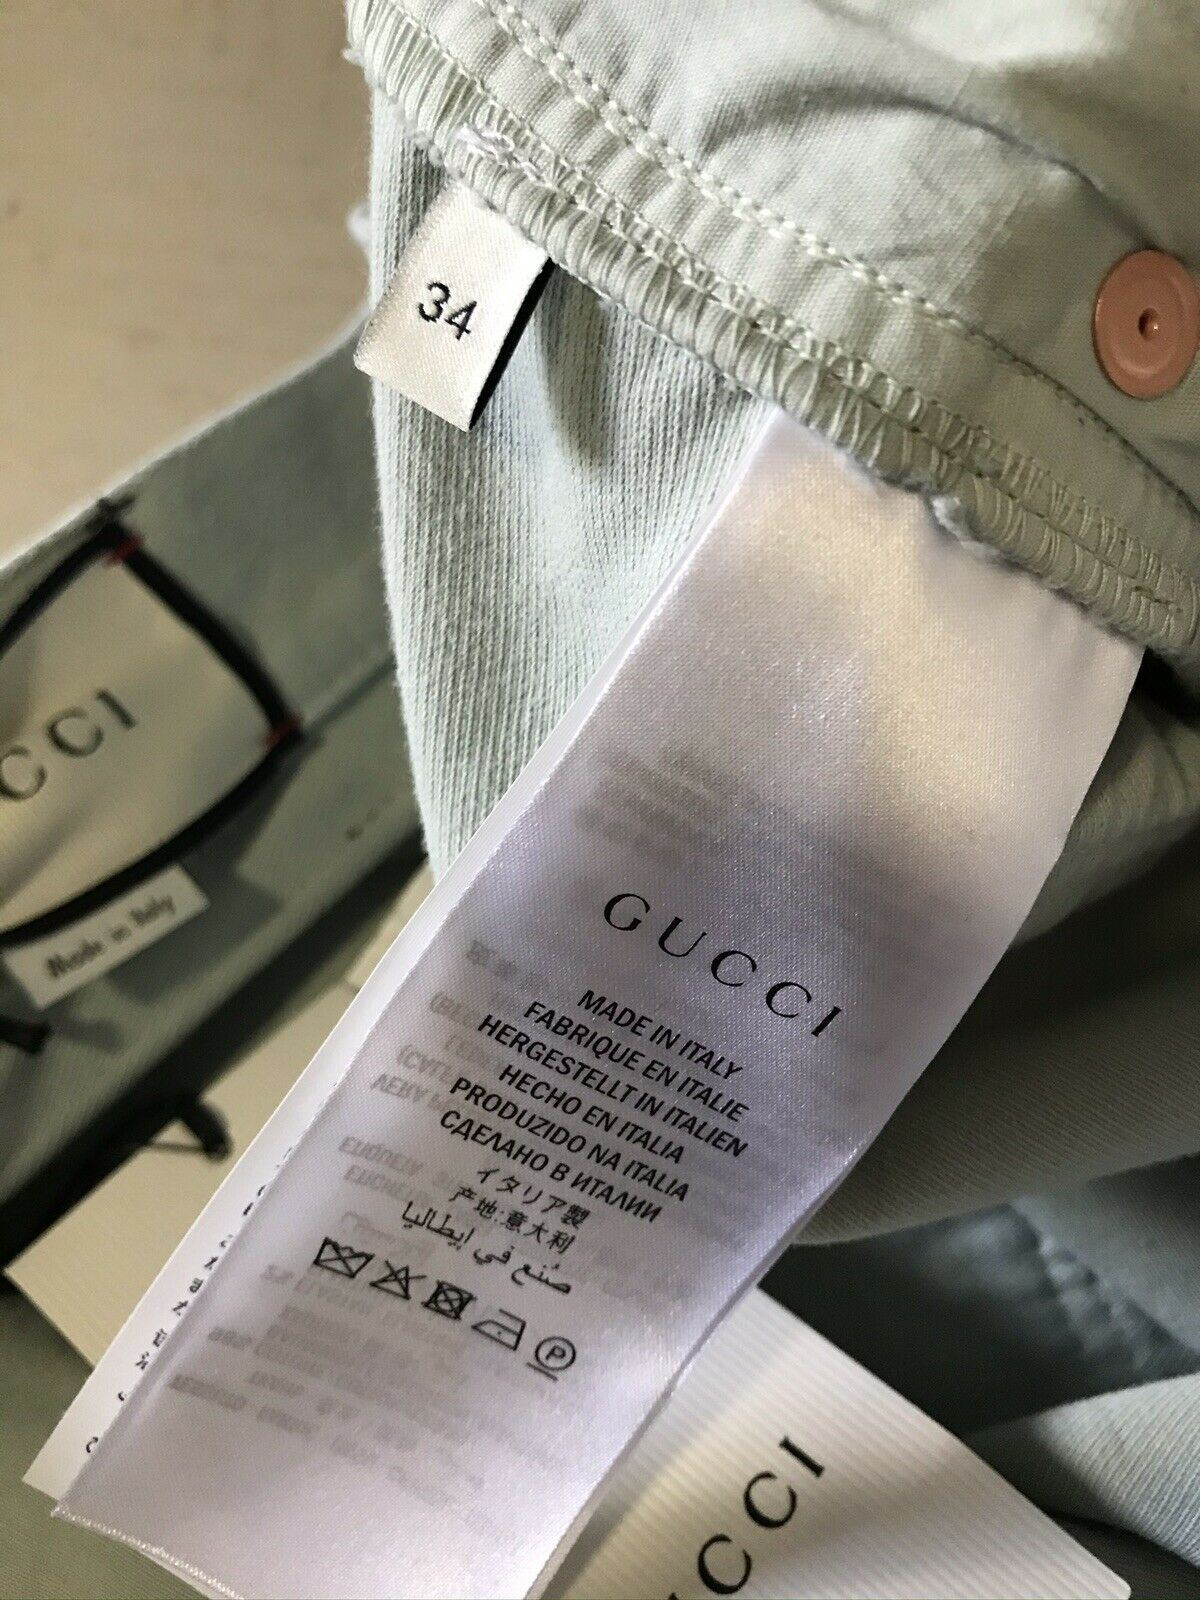 New $950 Gucci Men Dyed Cotton Jeans Pants LT Blue 34 US Made in Italy